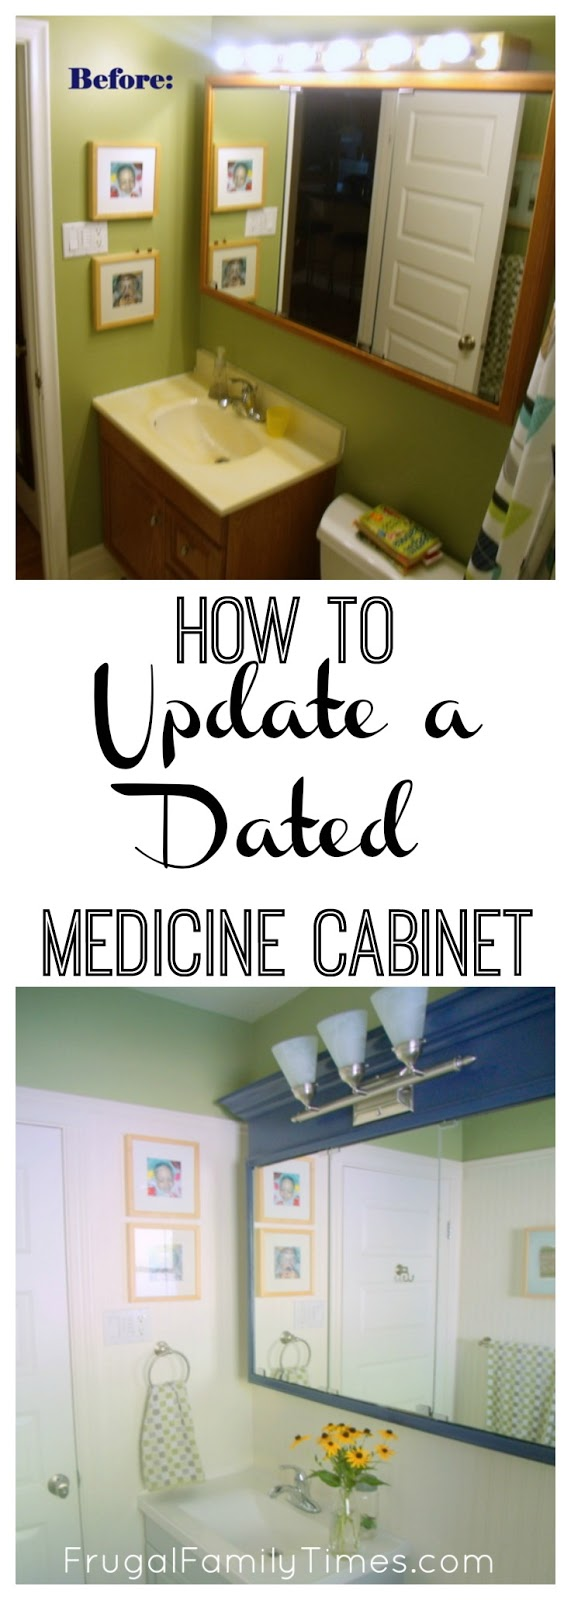 how to update an old dated medicine cabinet on a tight budget frugal family times. Black Bedroom Furniture Sets. Home Design Ideas